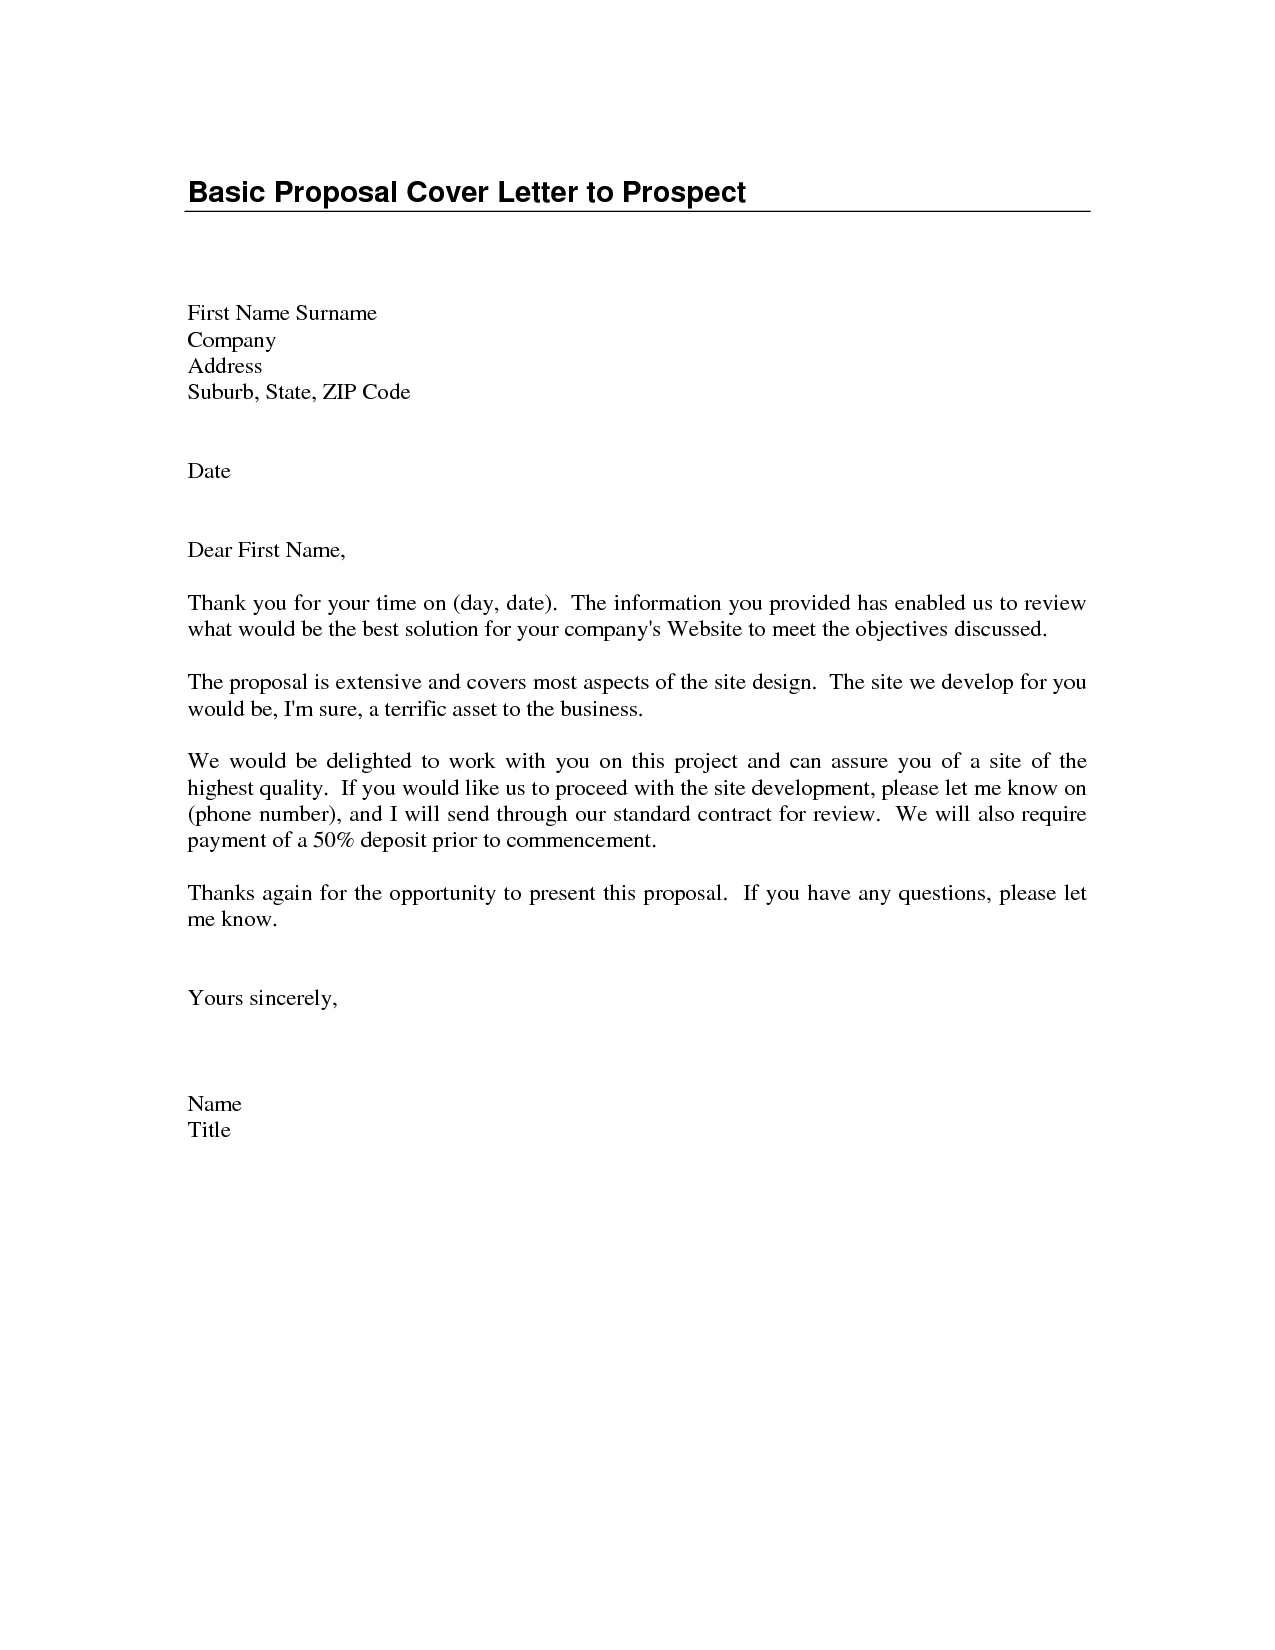 Sample Proposal Cover Letter 1 Business techtrontechnologies.com